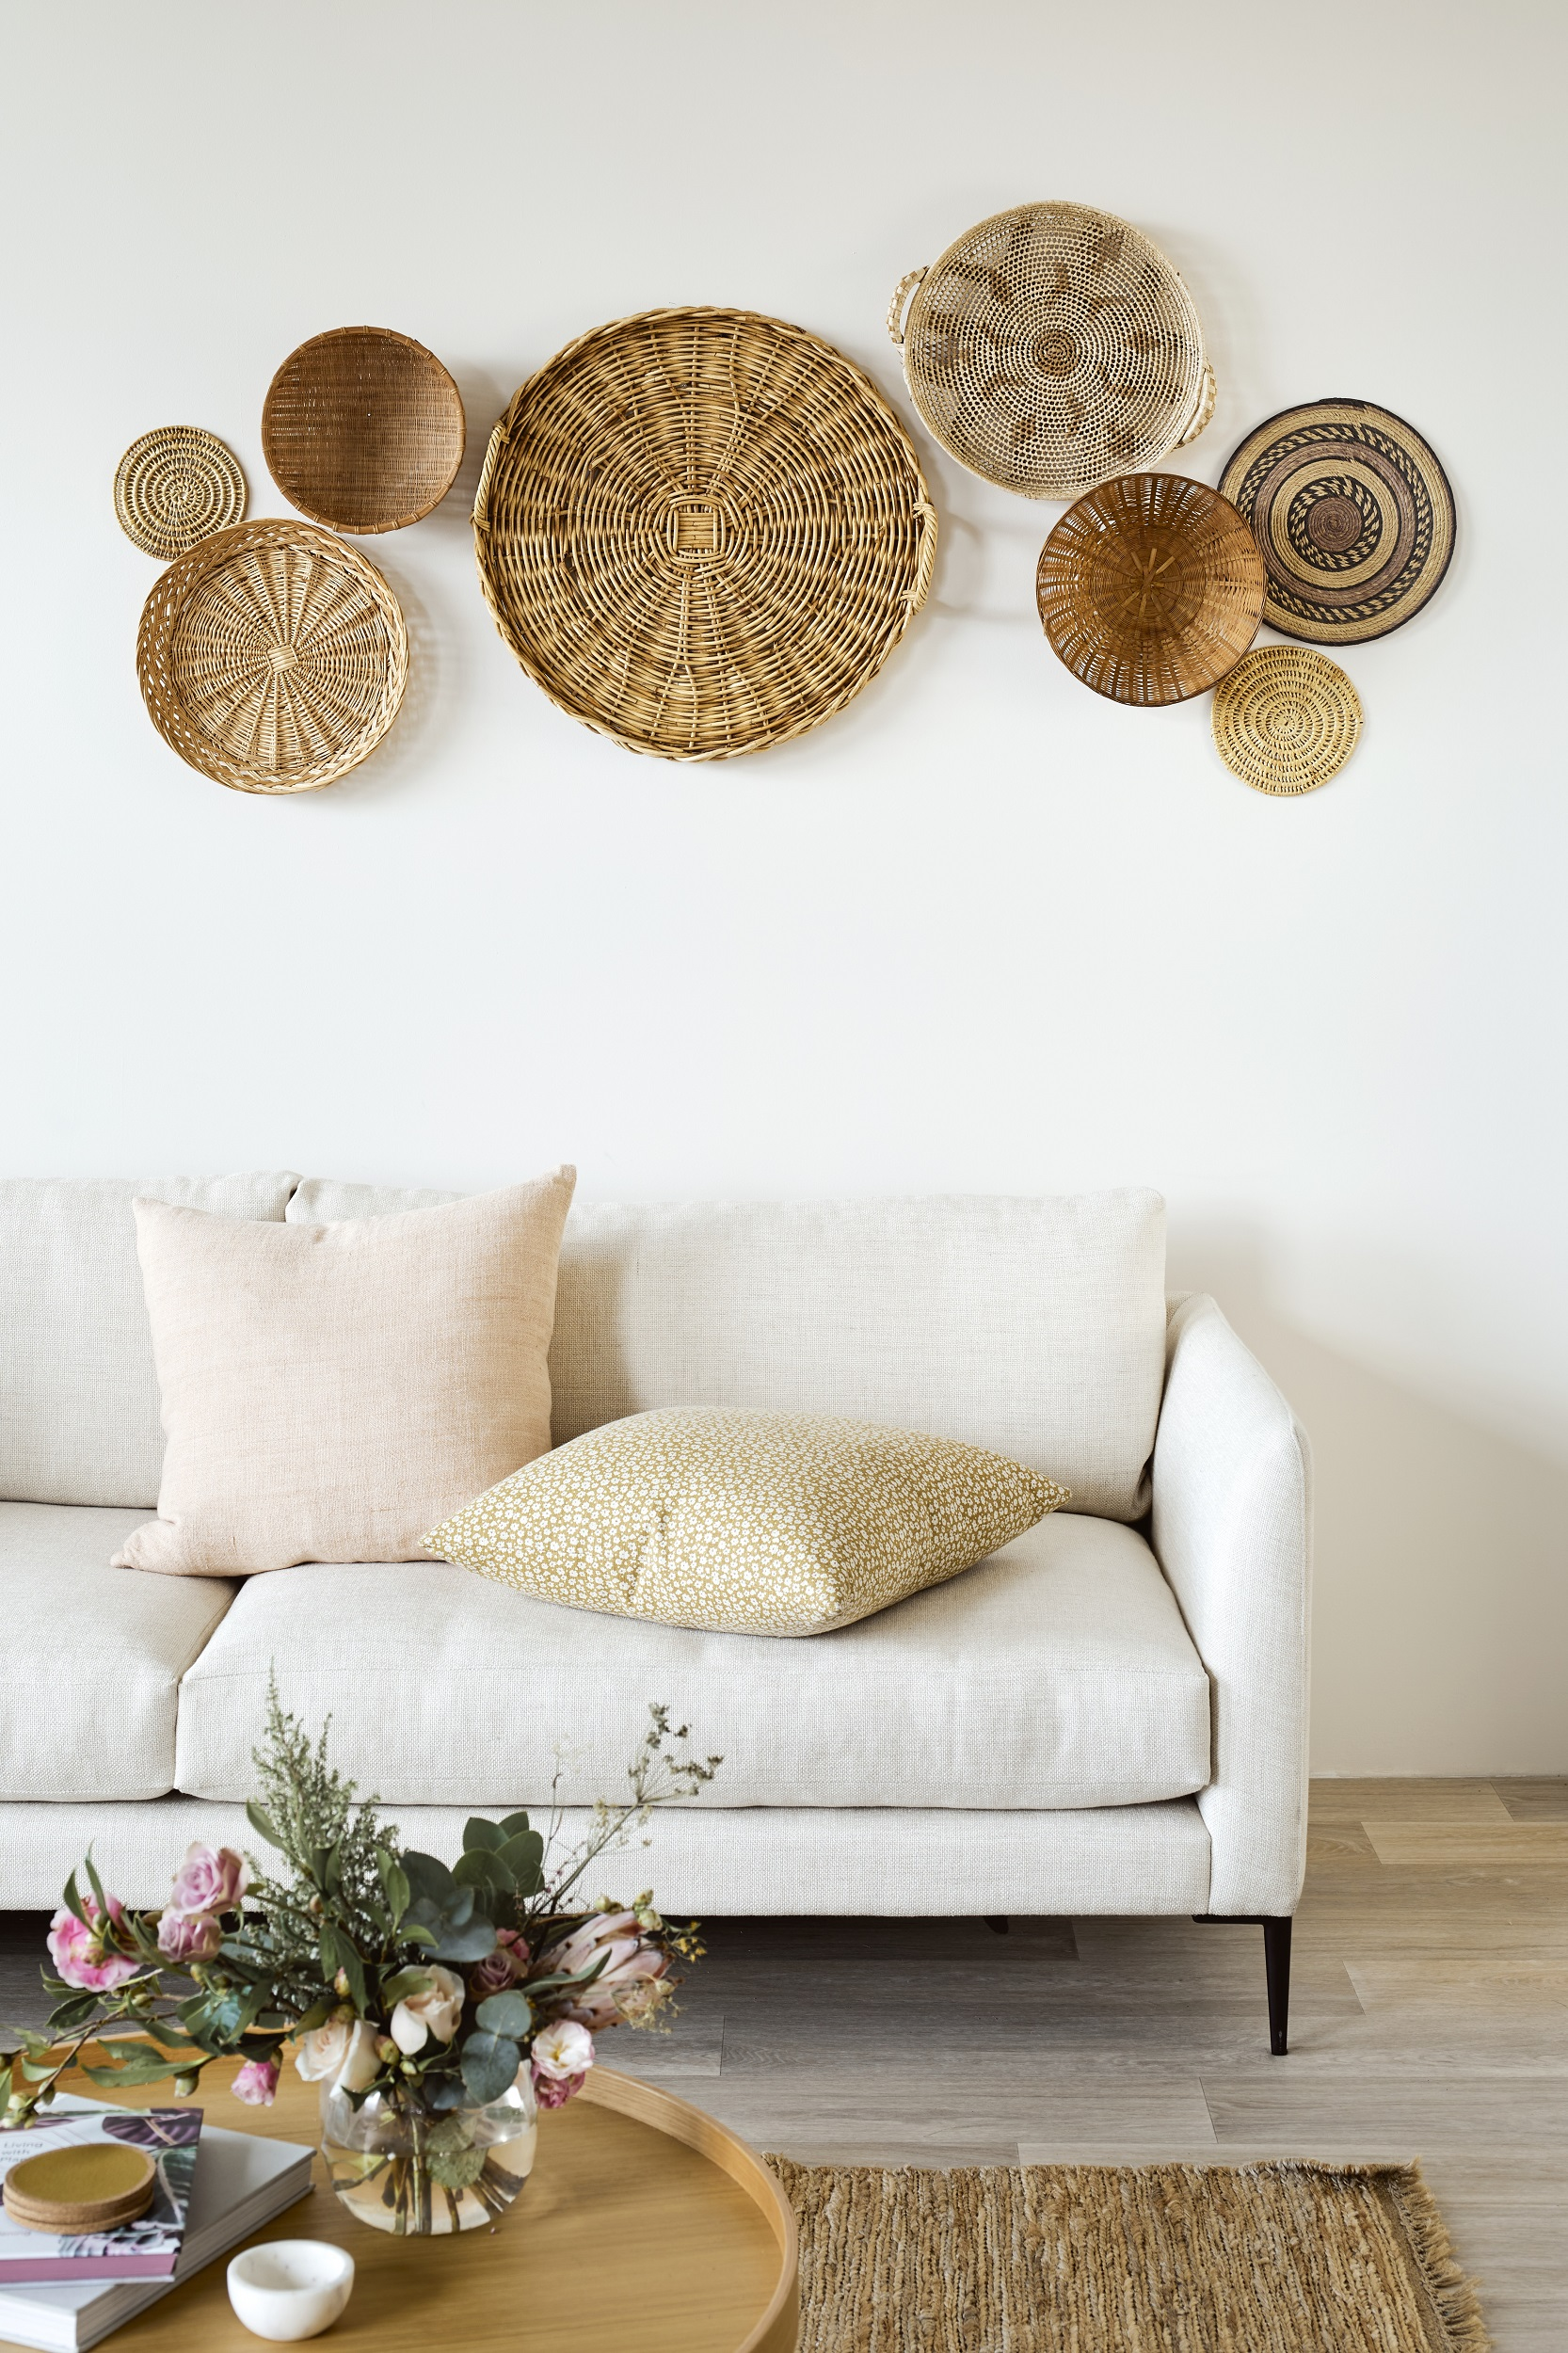 Style your space - June 20180119.jpg